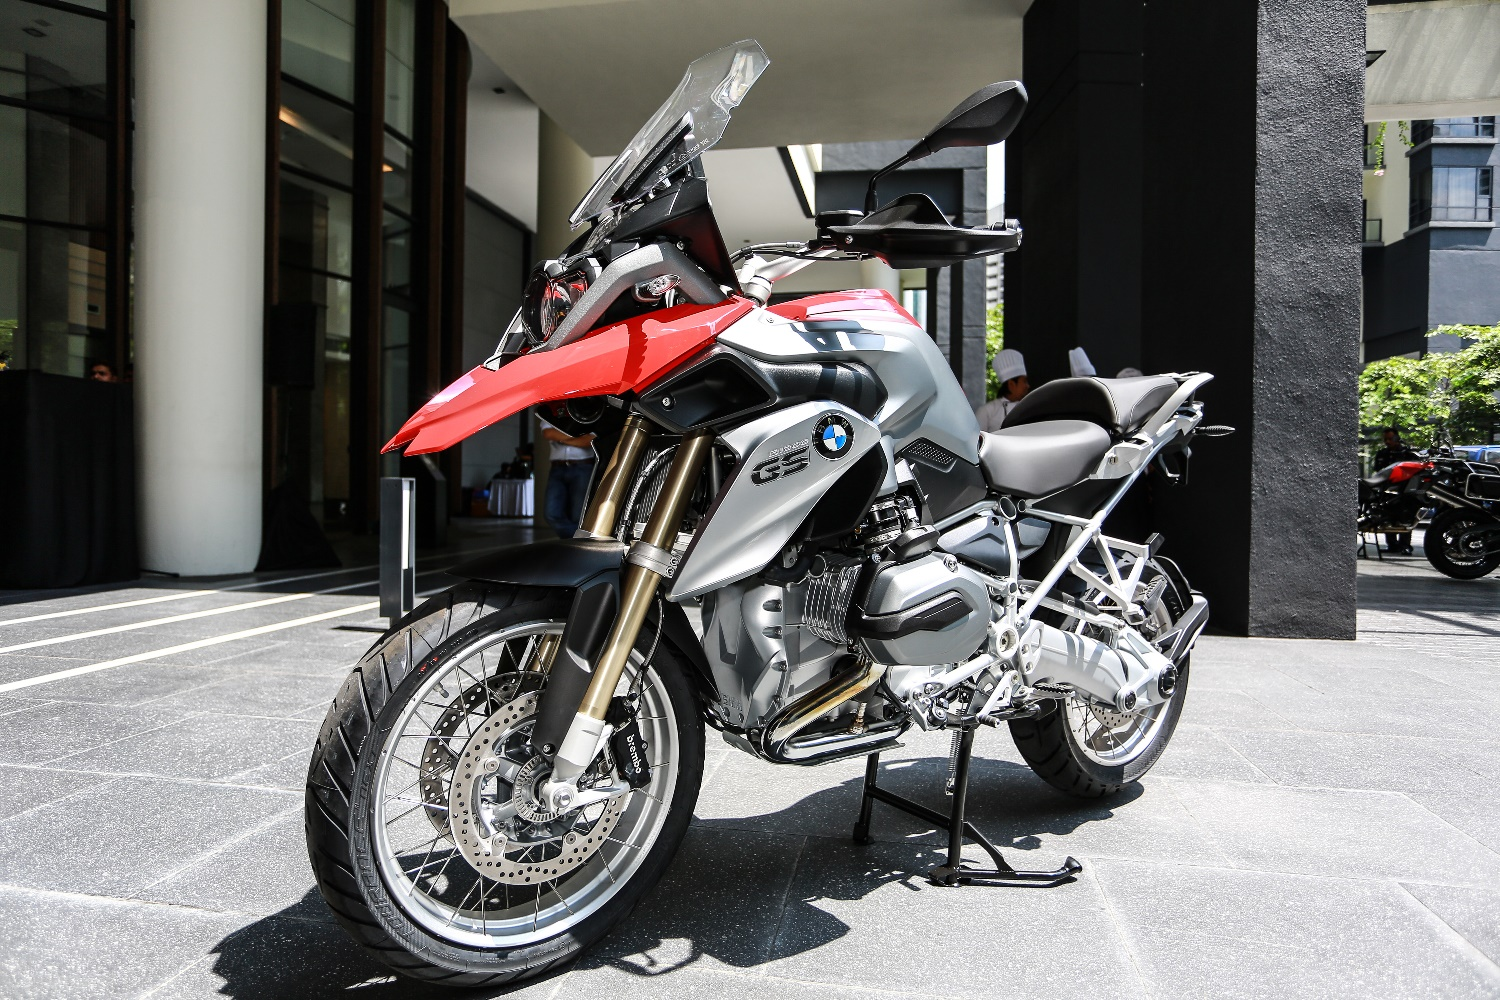 new bmw r 1200 gs now in malaysia from rm125k. Black Bedroom Furniture Sets. Home Design Ideas